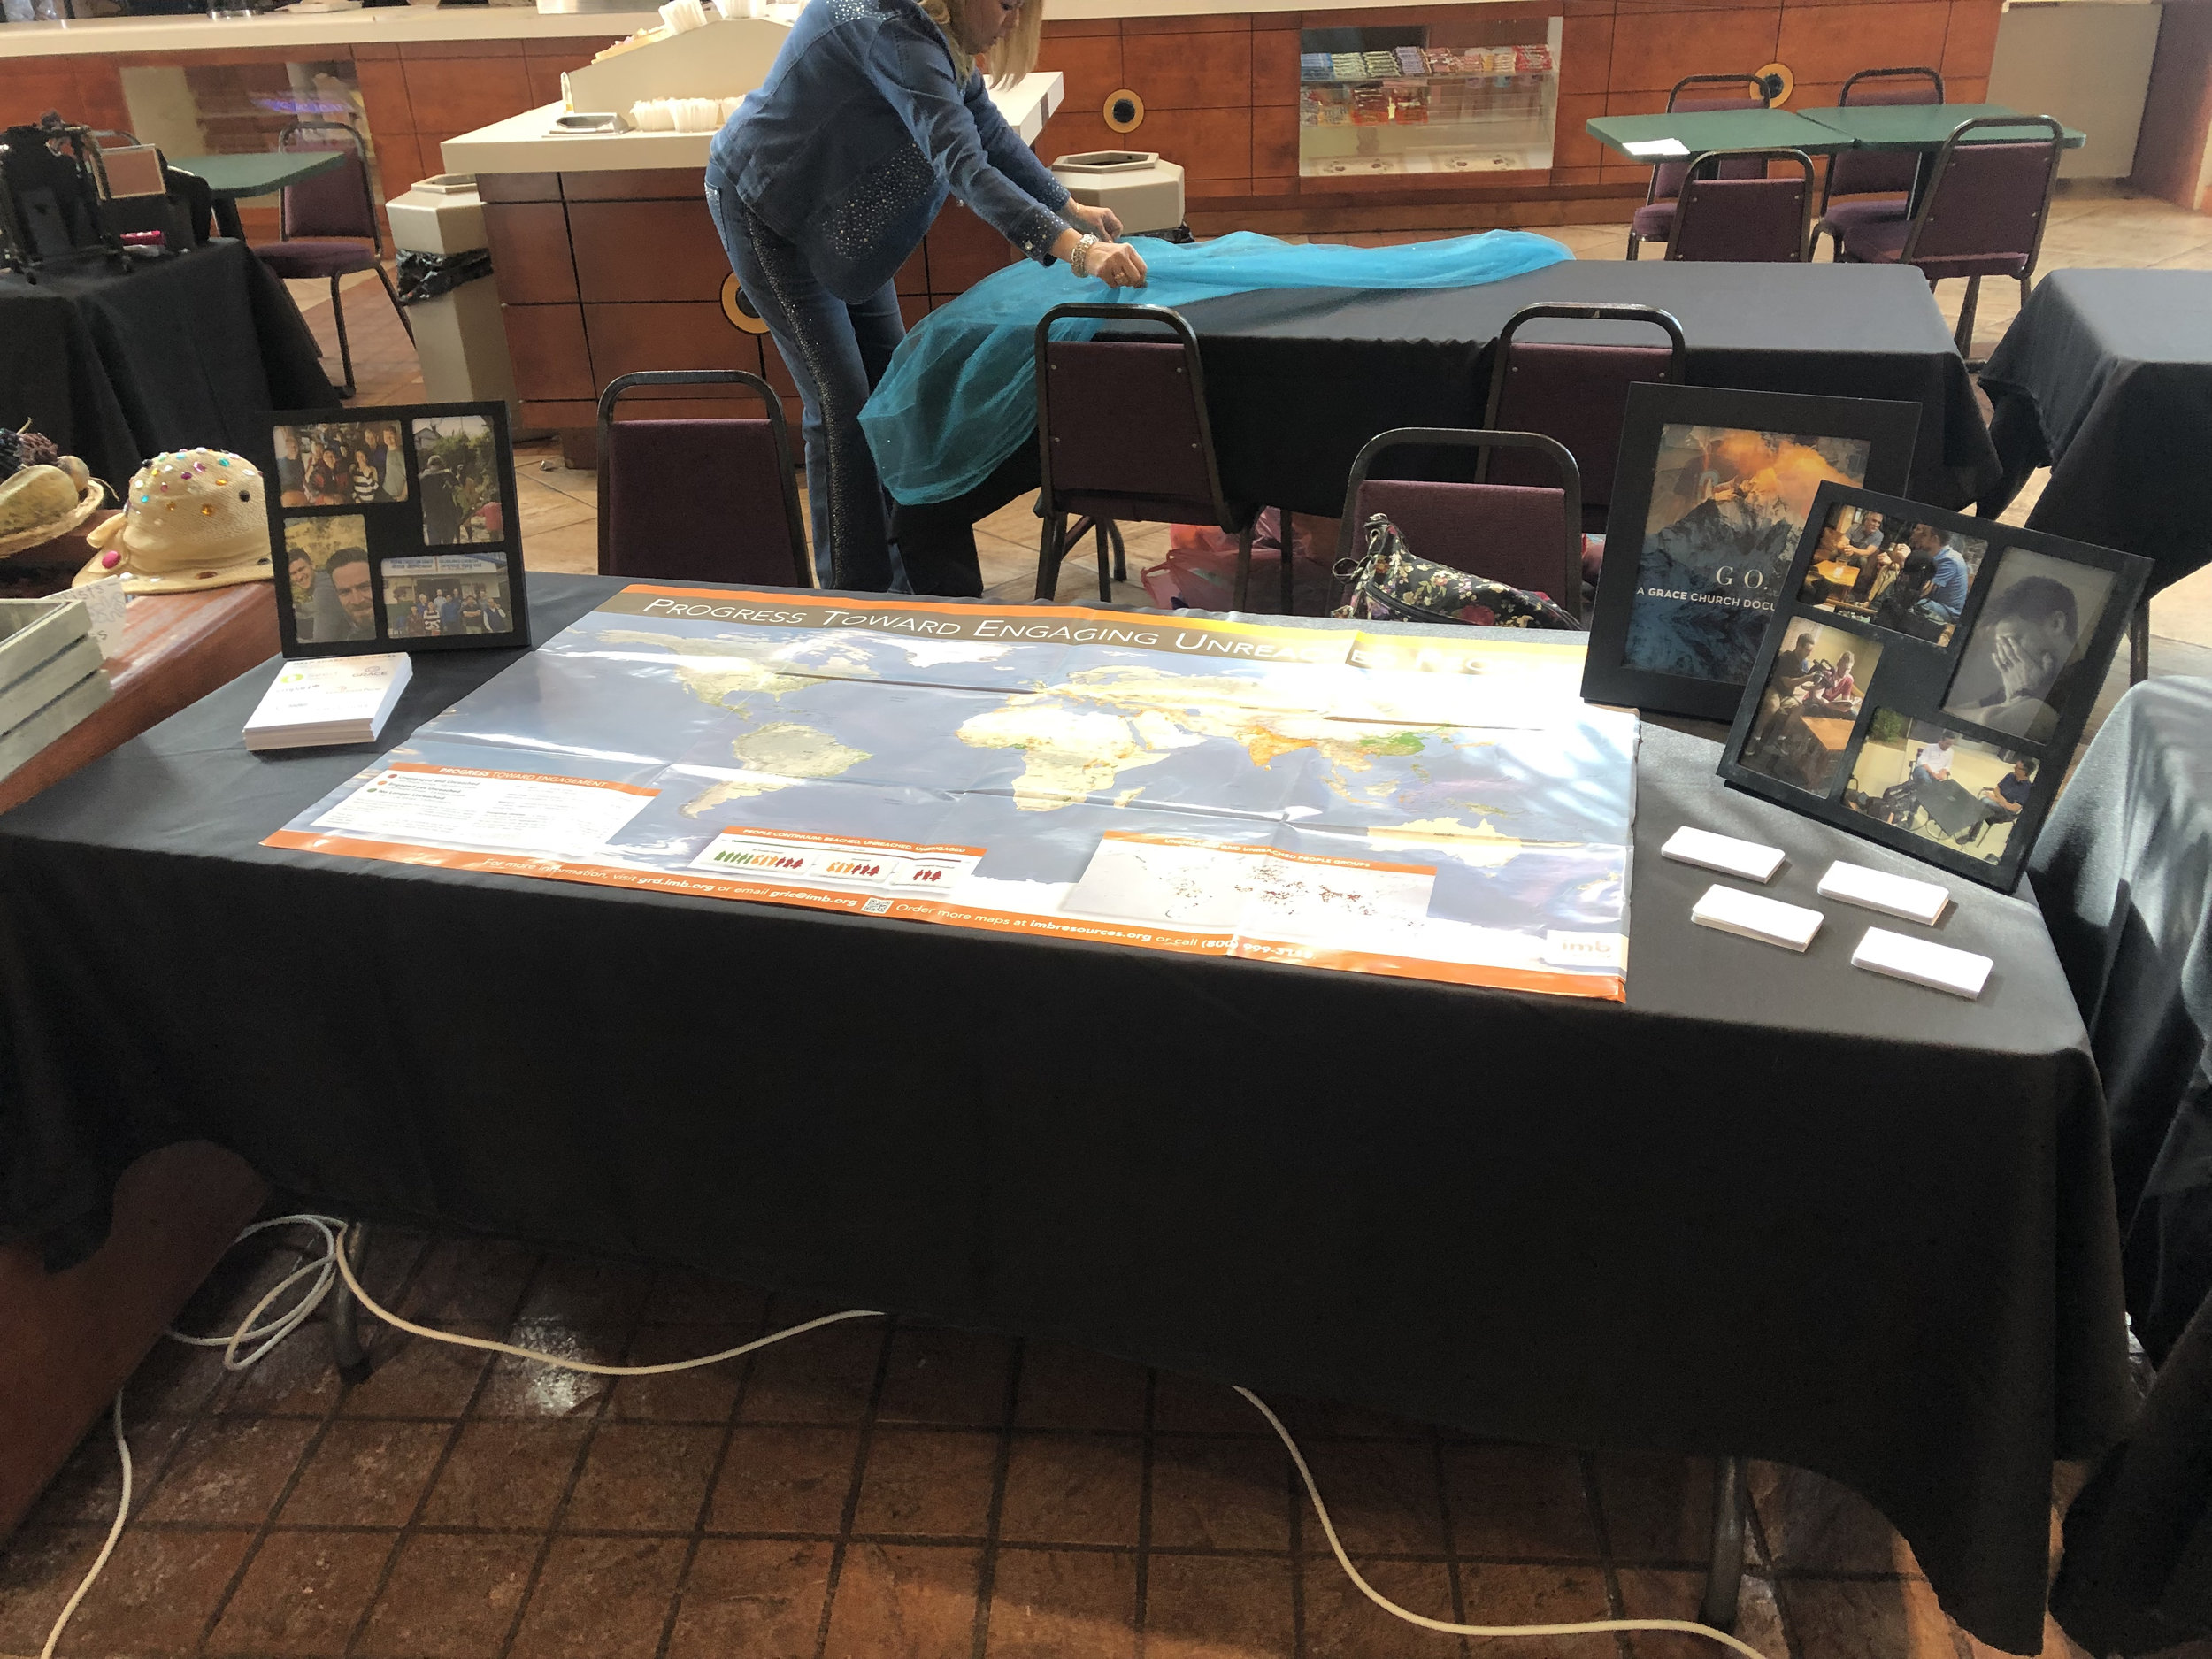 Our table representing the Unreached